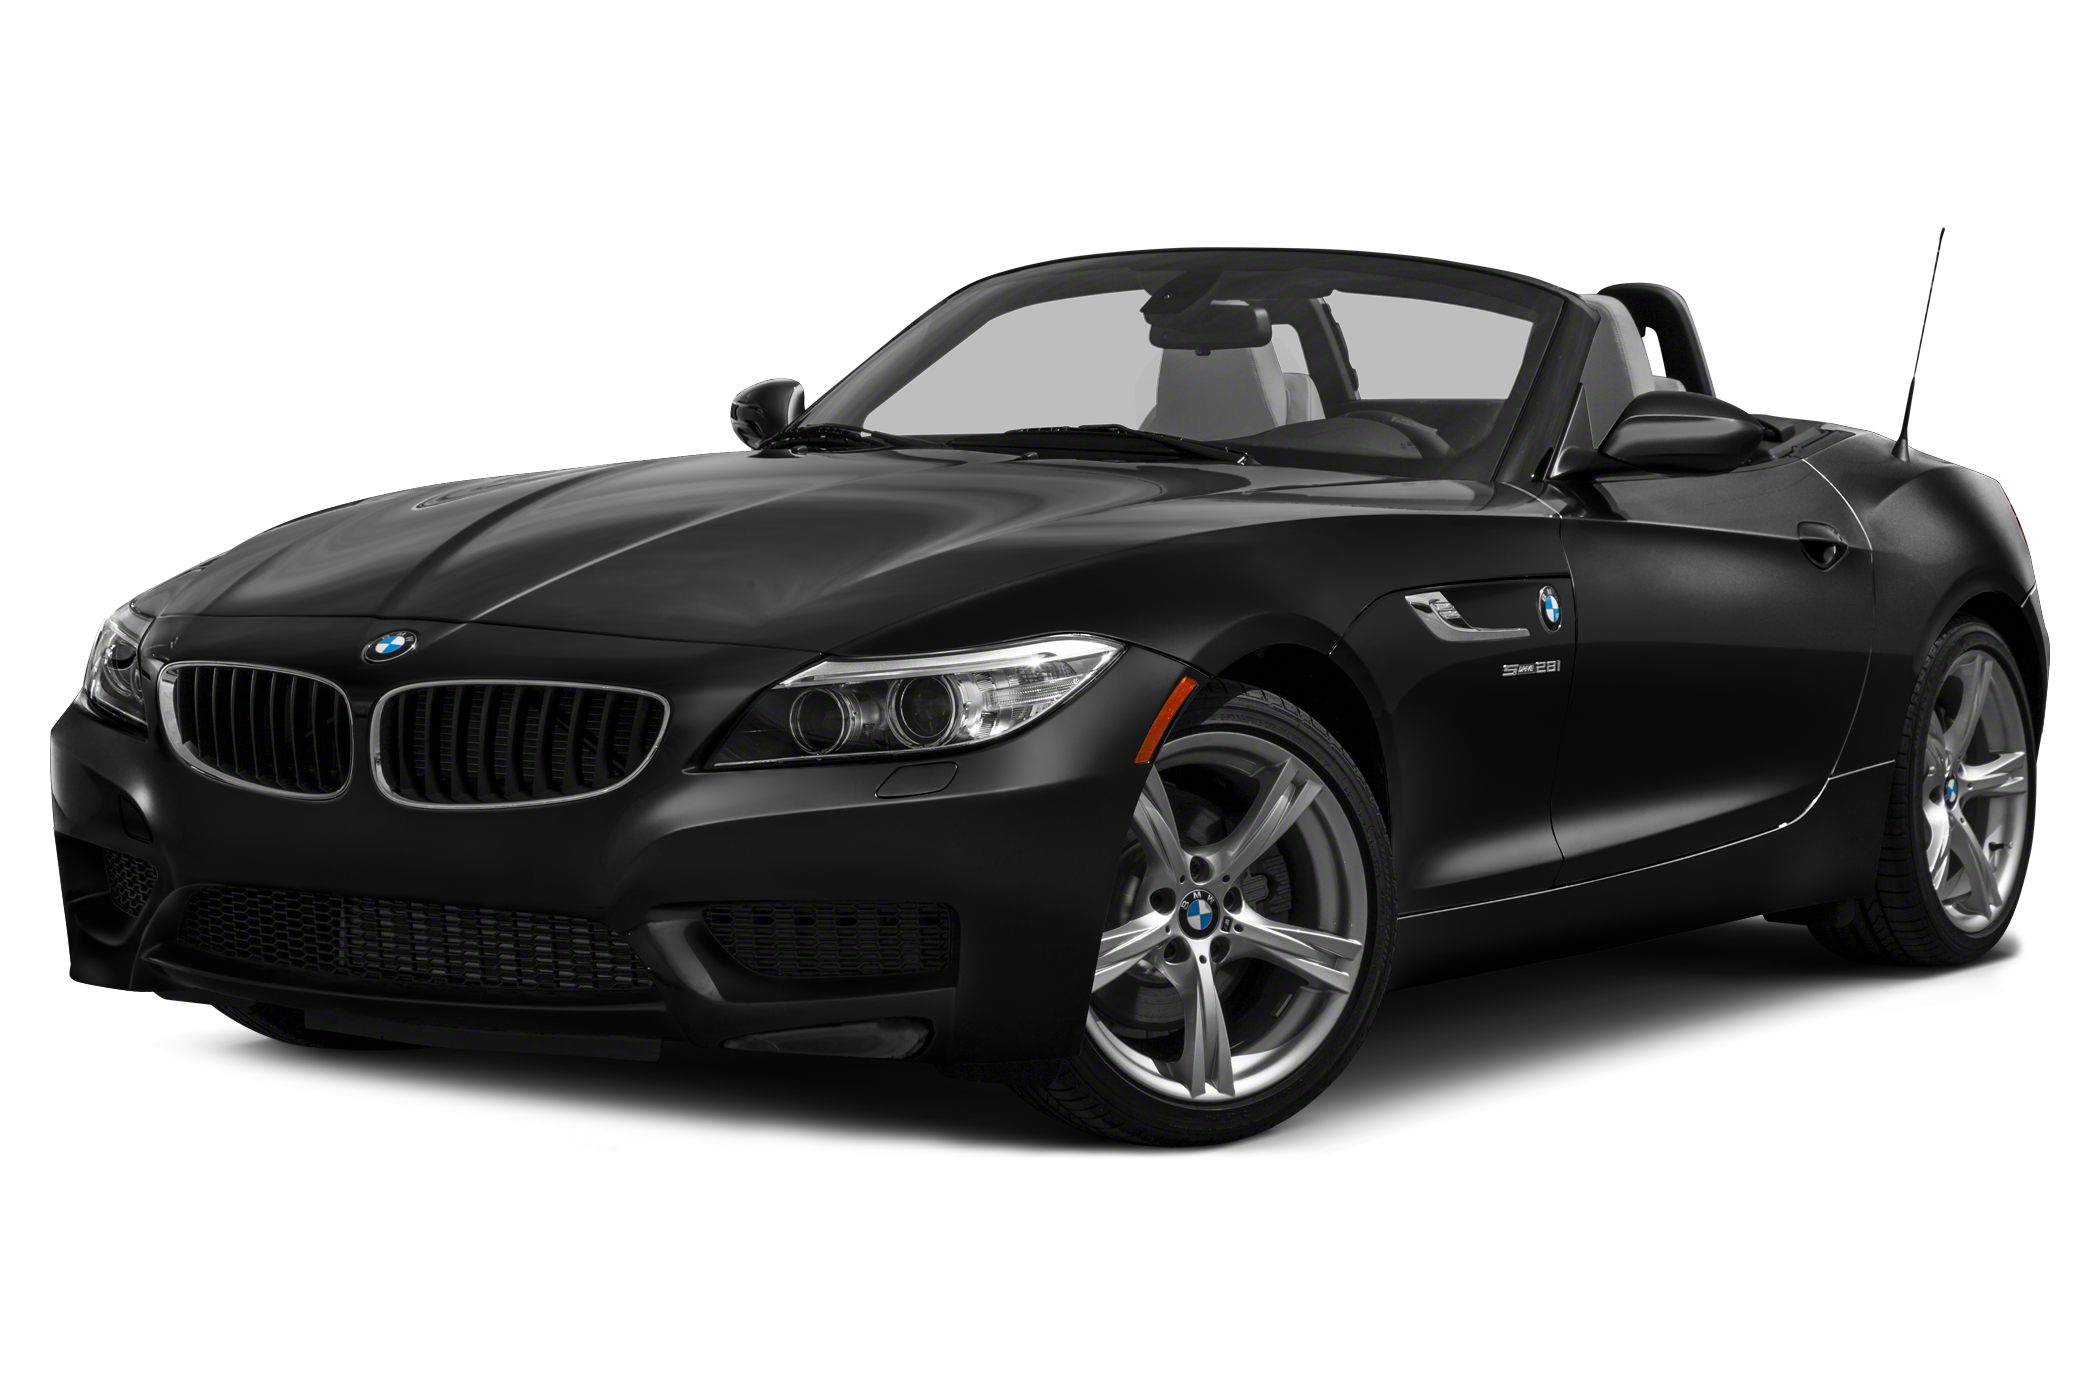 bmw z4 news photos and buying information autoblog. Black Bedroom Furniture Sets. Home Design Ideas